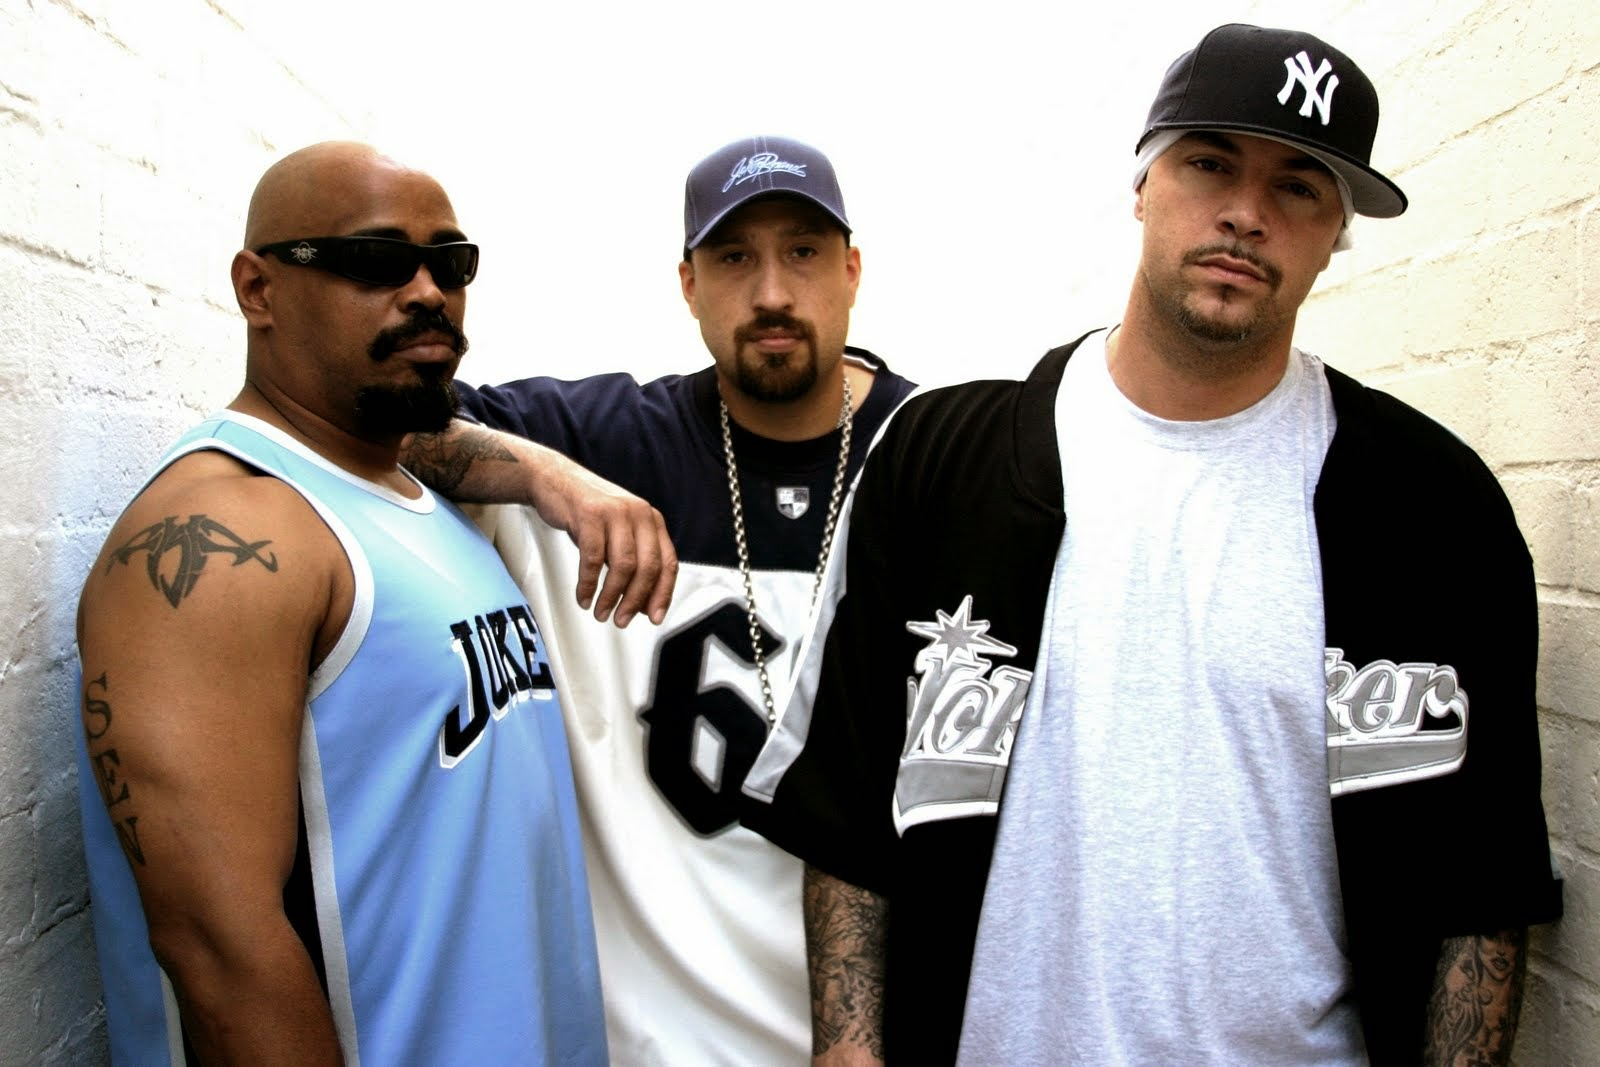 rap y hip hop , biografias, musica hip hop , raperos estadounidenses, cypress hill, b- real, dj muggs, sean dog, eric bobo,